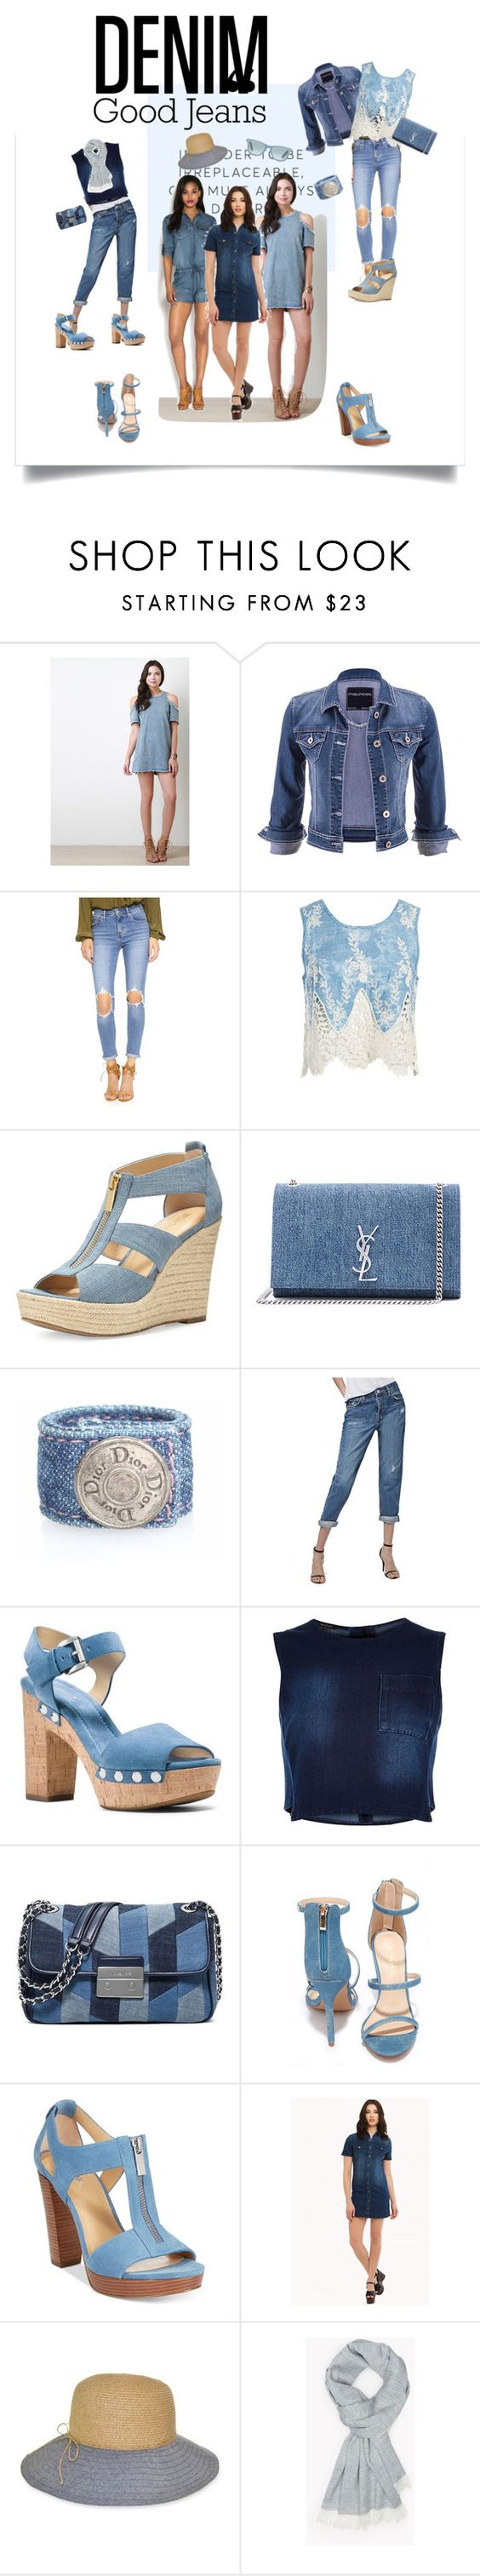 """Denim"" by alyssab7 ❤ liked on Polyvore featuring maurices, Levi's, Sans Souci, MICHAEL Michael Kors, Yves Saint Laurent, Topshop, River Island, Liliana, Michael Kors and Nine West"